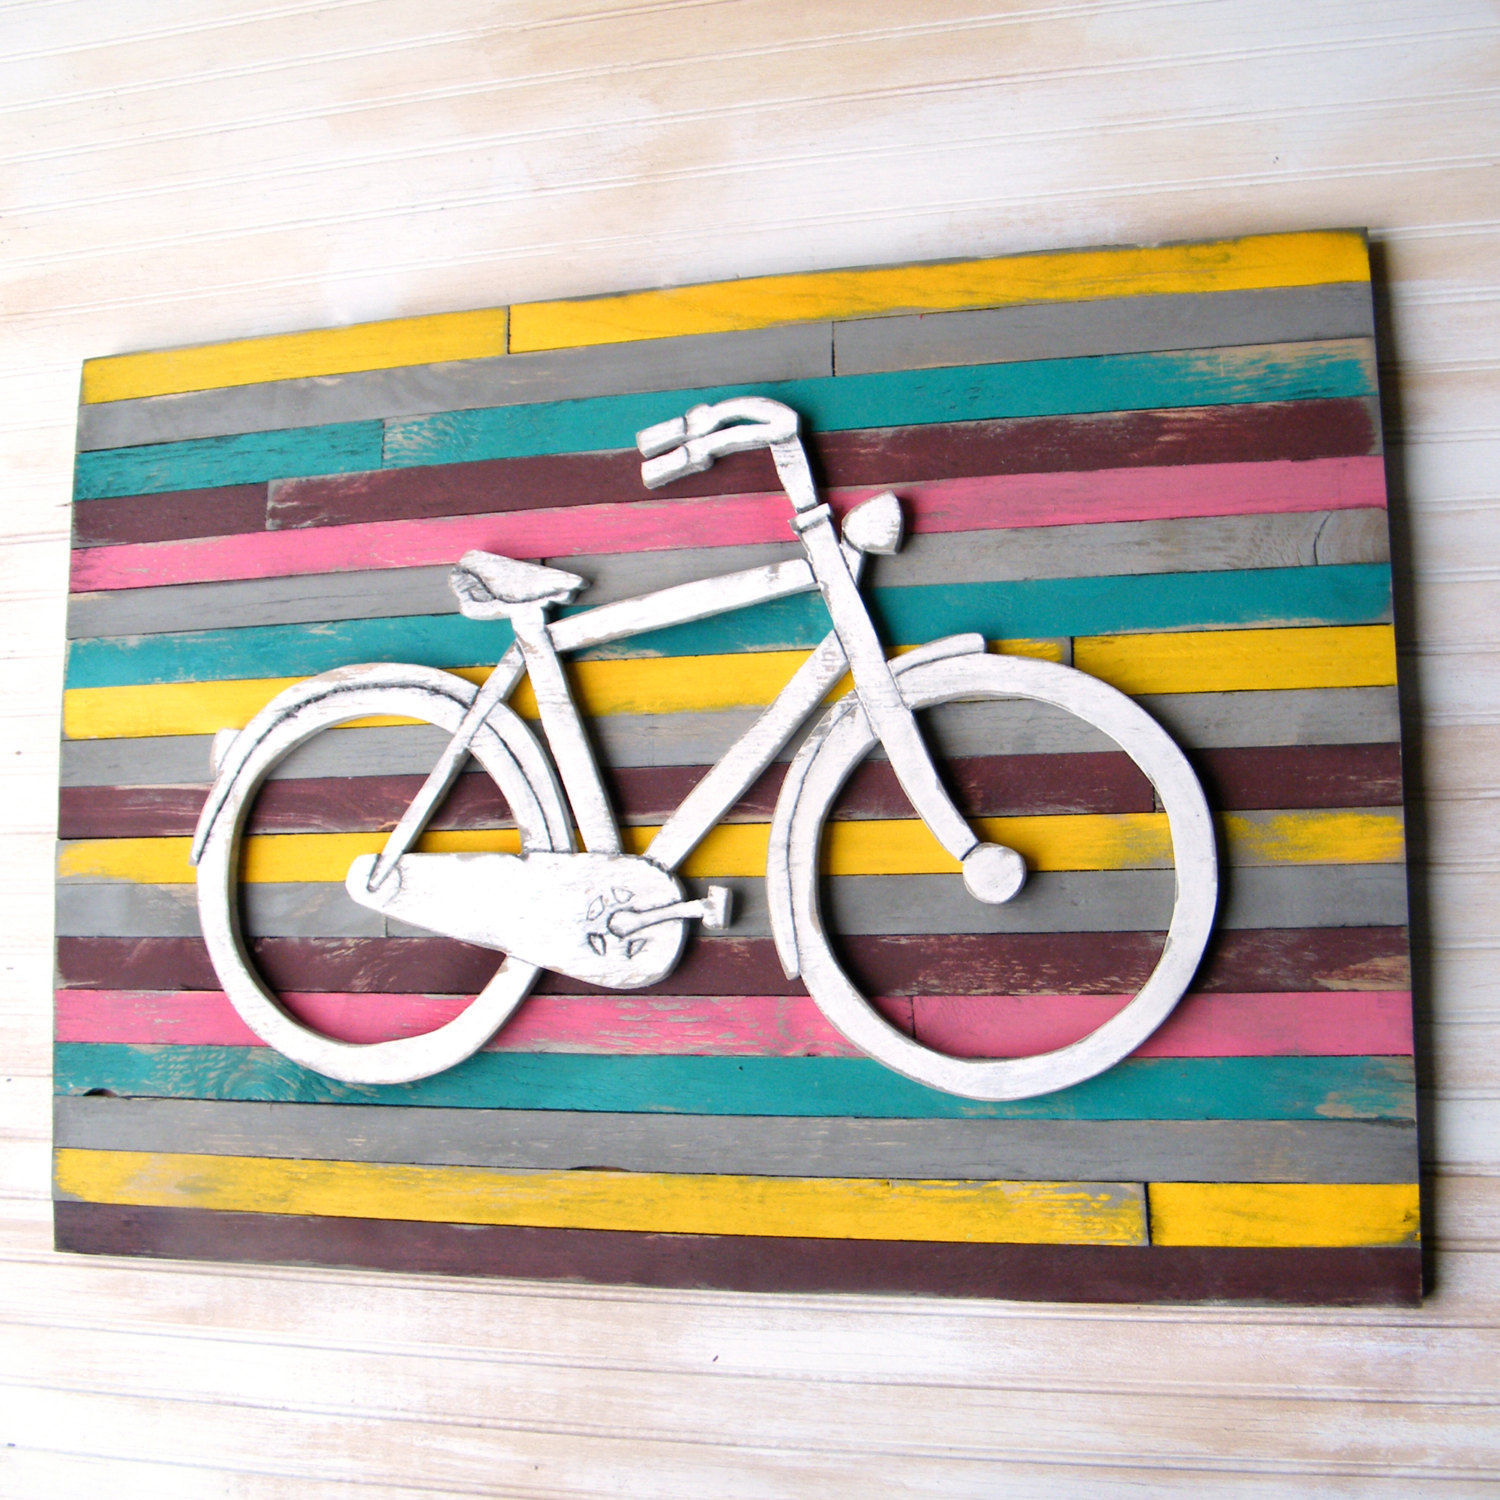 Bicycle Art Pallet Art Large Bicycle Wall Decor Wooden Bike Sign Bike Wall Decor Customizable Large Wooden Wall Art Bicycle Wall Art Inside Bike Wall Decor (View 19 of 30)